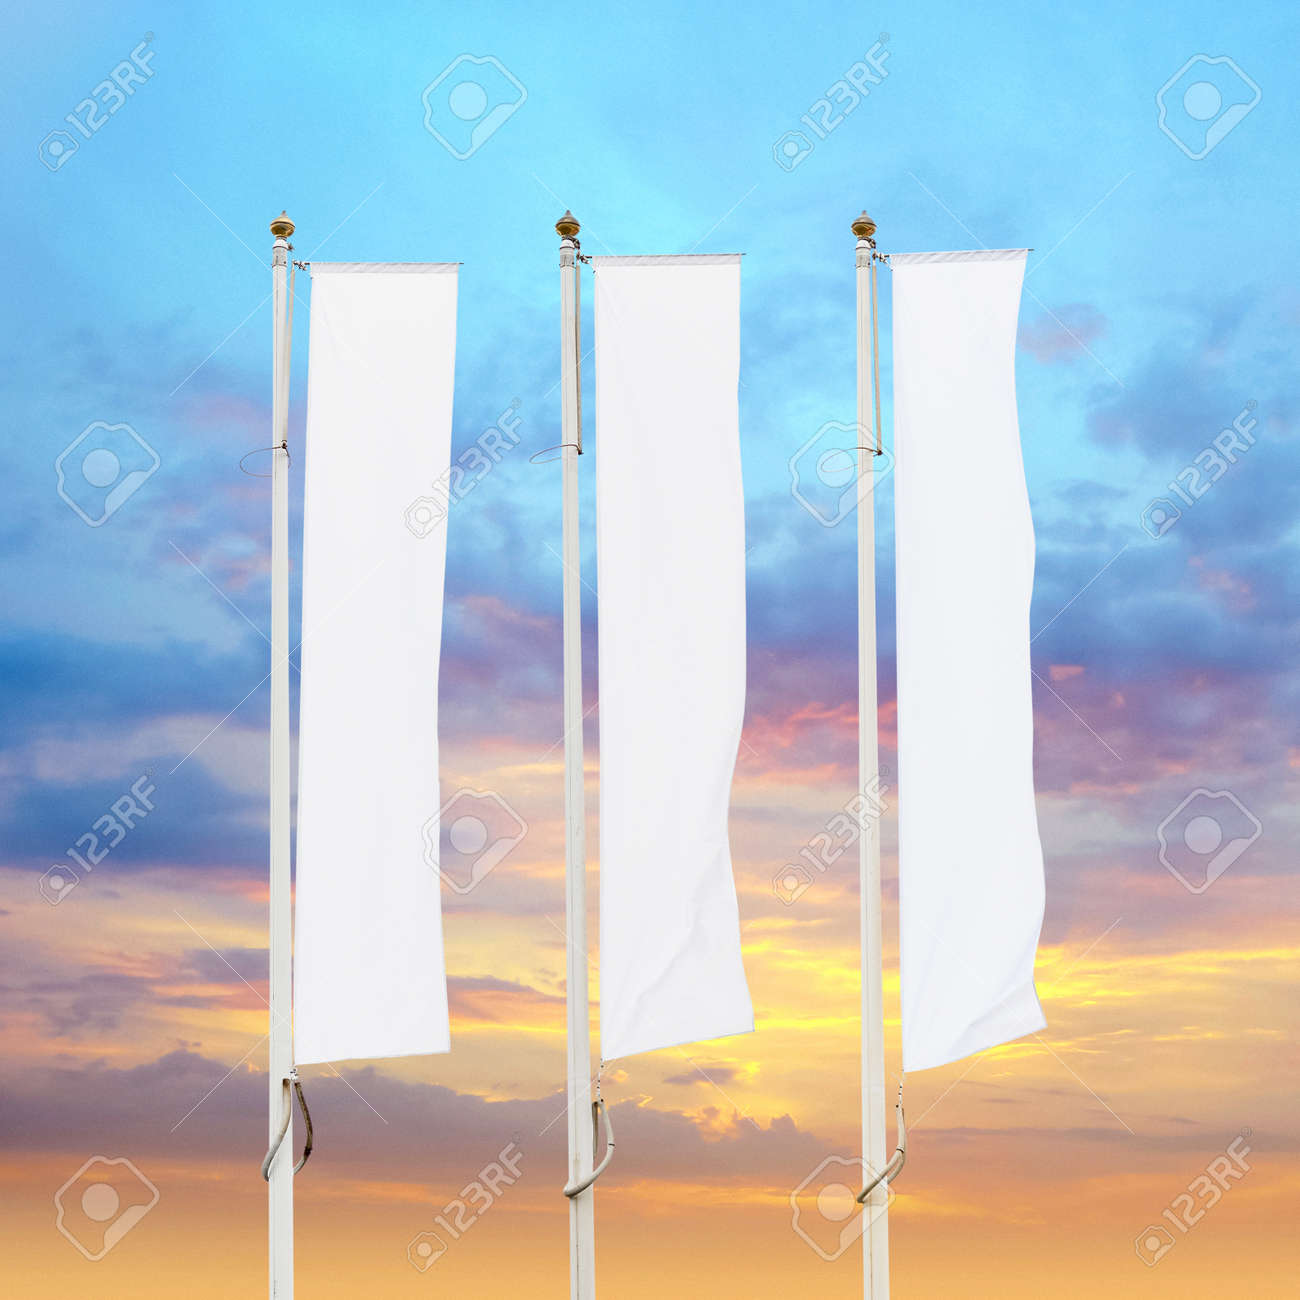 Three blank white corporate flags on flagpoles with sunset sky background, corporate flag mockup to ad logo, text or symbol, company identity flag template with copy space - 120653261